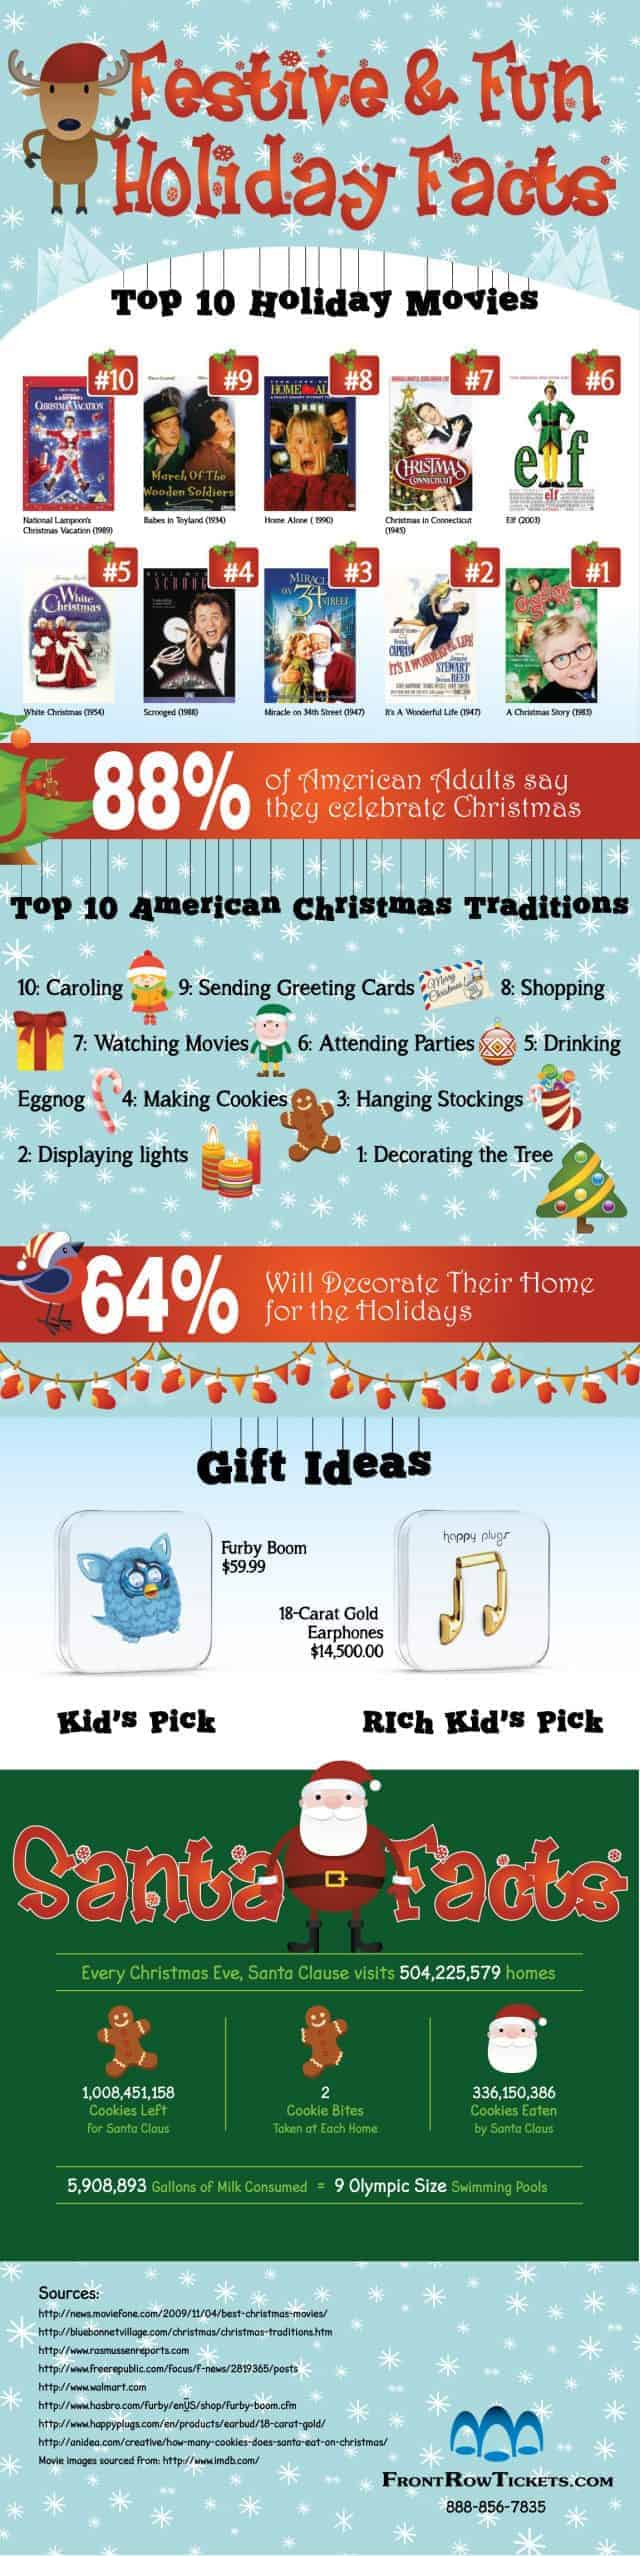 Festive and Fun Holiday Facts